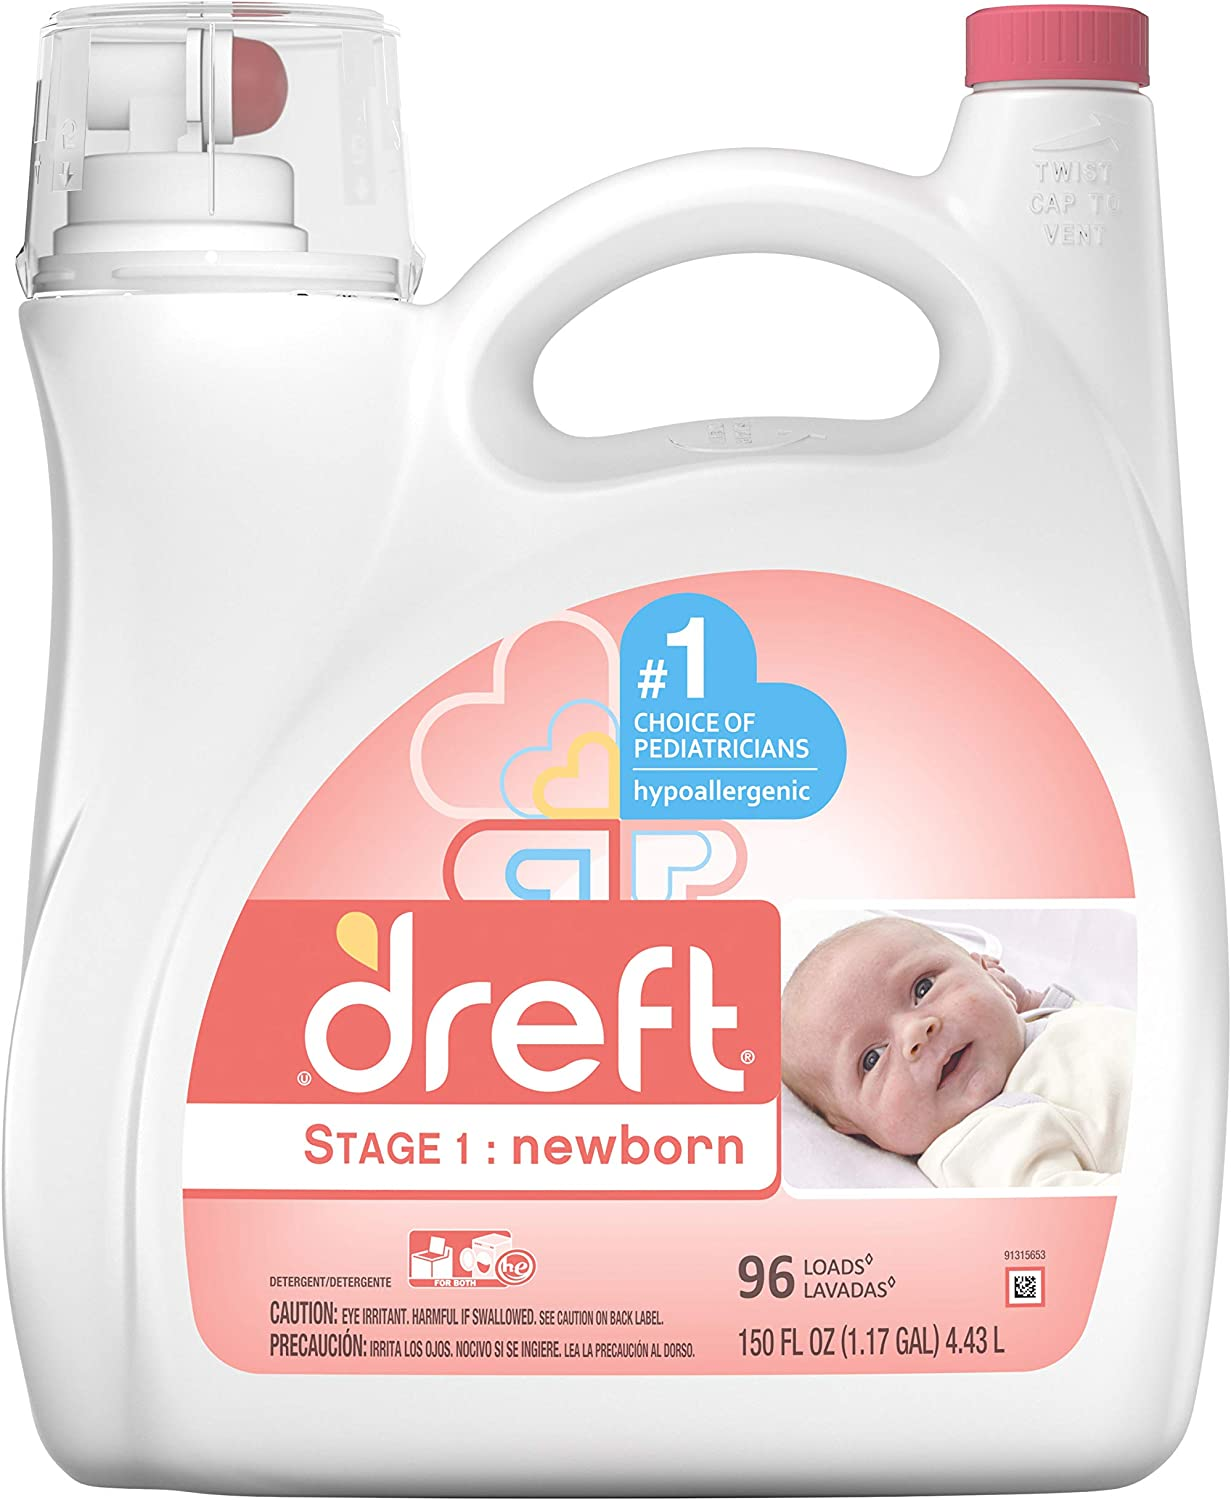 Dreft Stage 1: Newborn HEC Liquid Detergent